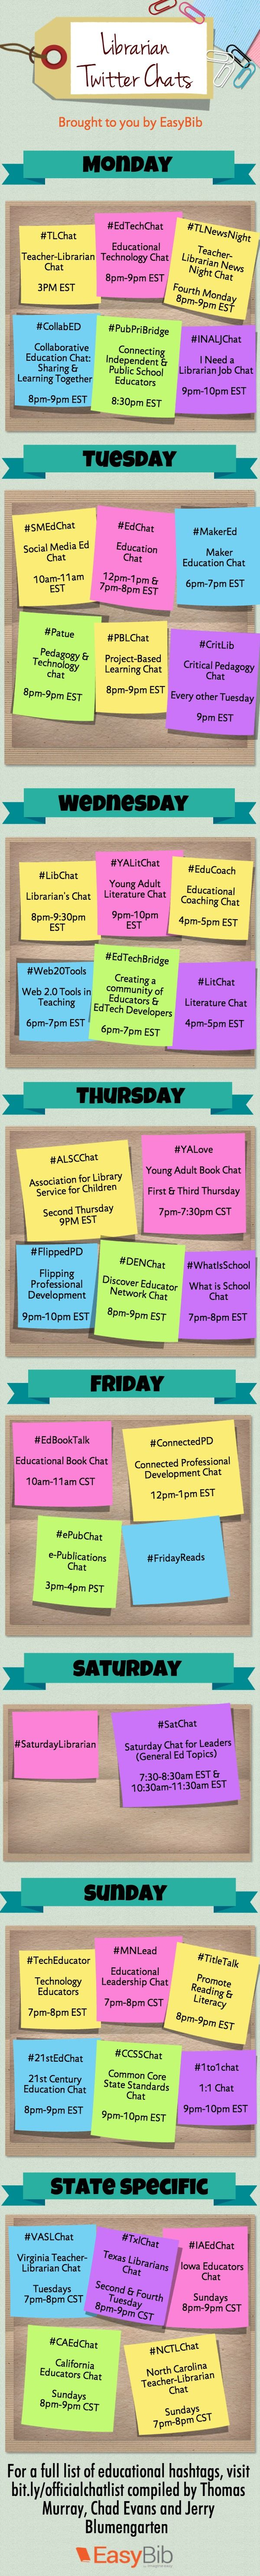 [Infographic] Librarian Twitter Chats